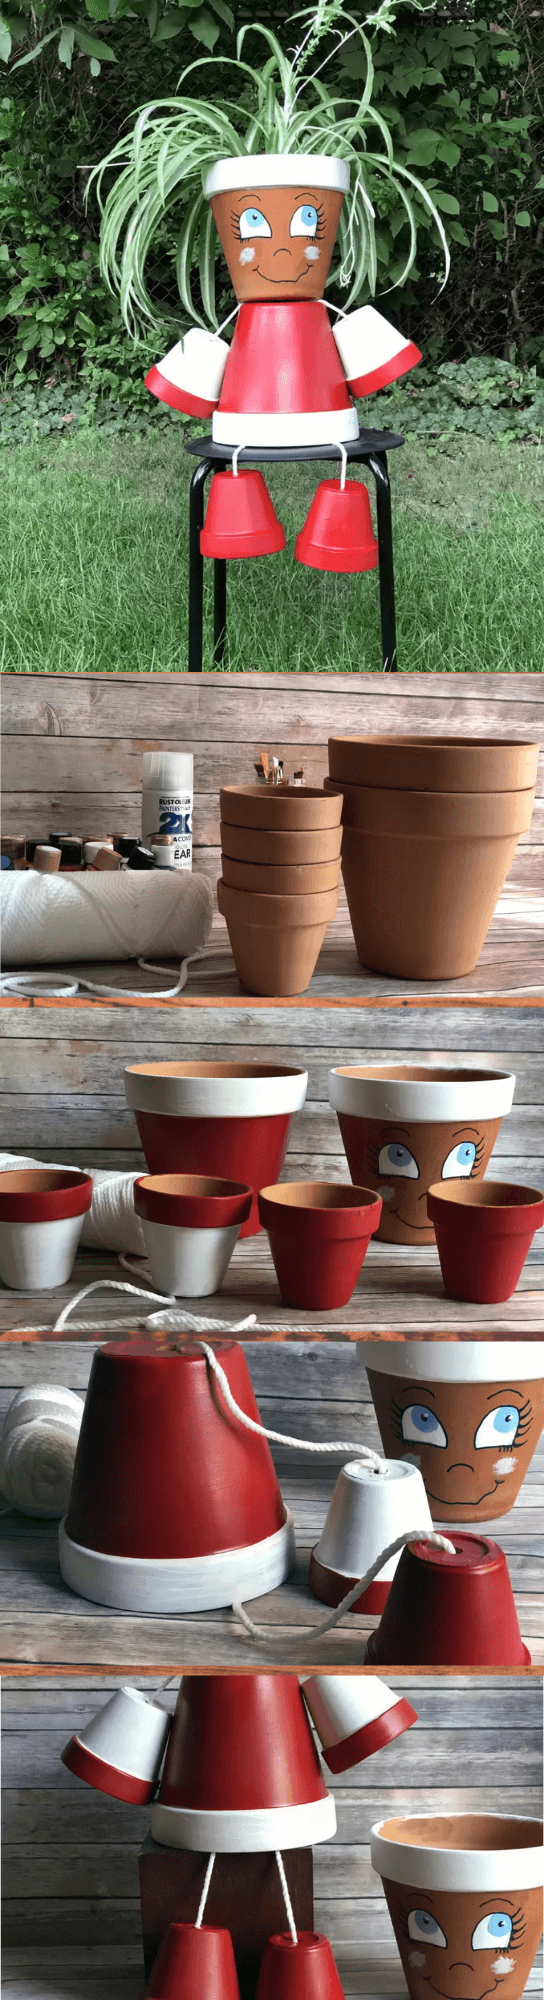 DIY Simple Flower Pot Lady